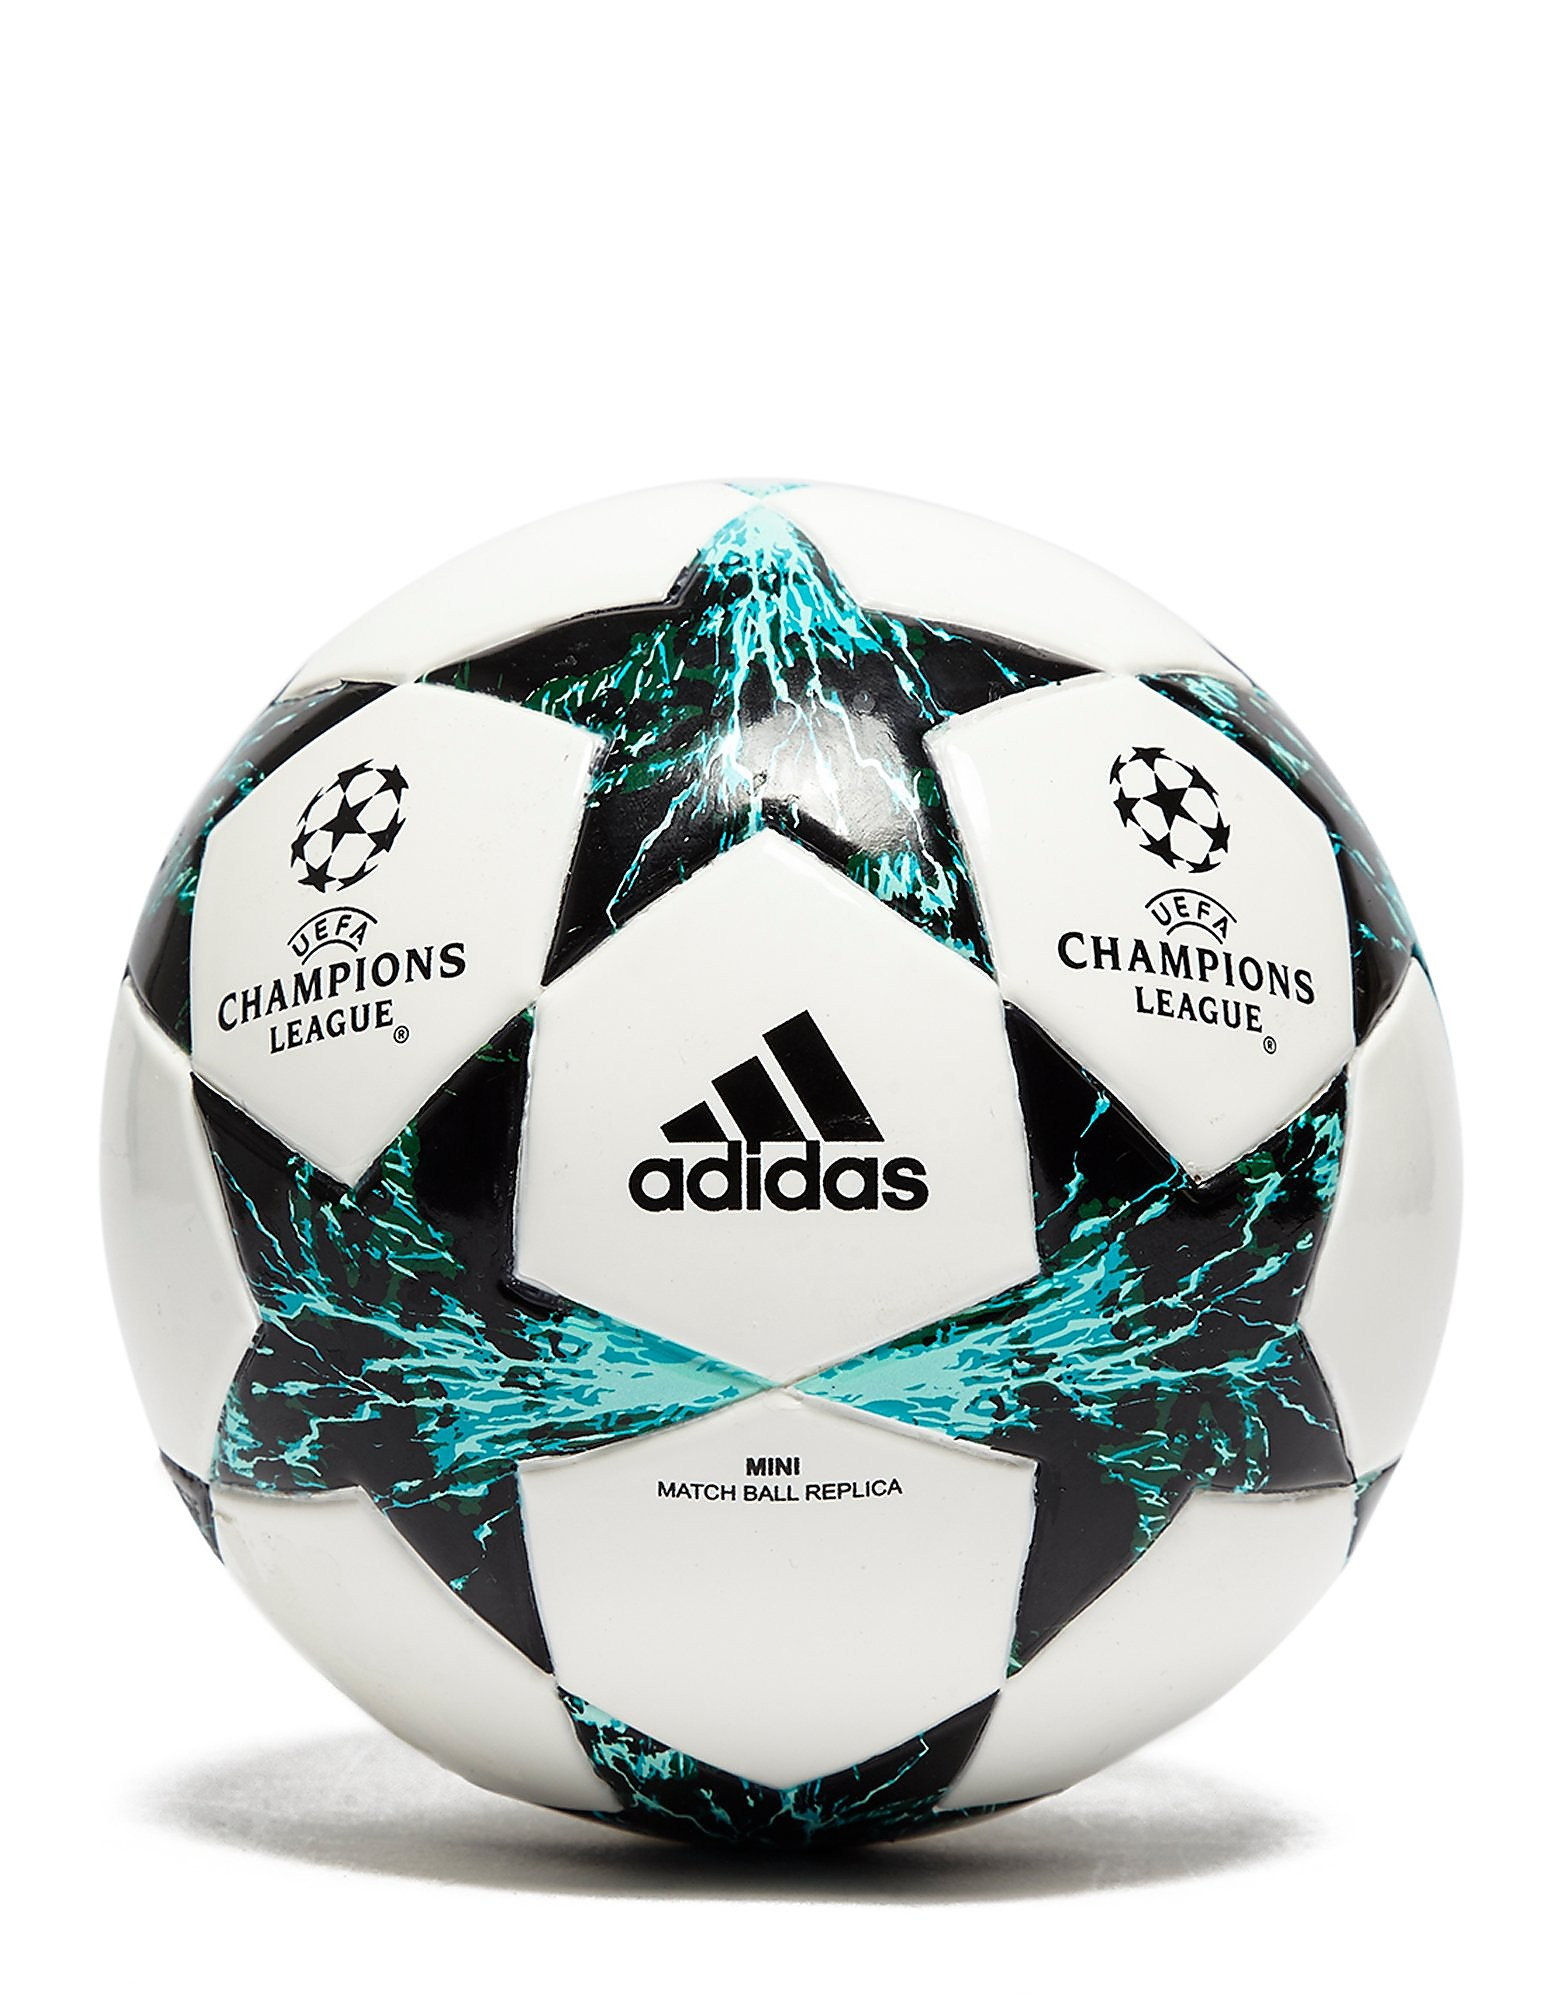 adidas UEFA Champions League Mini Football